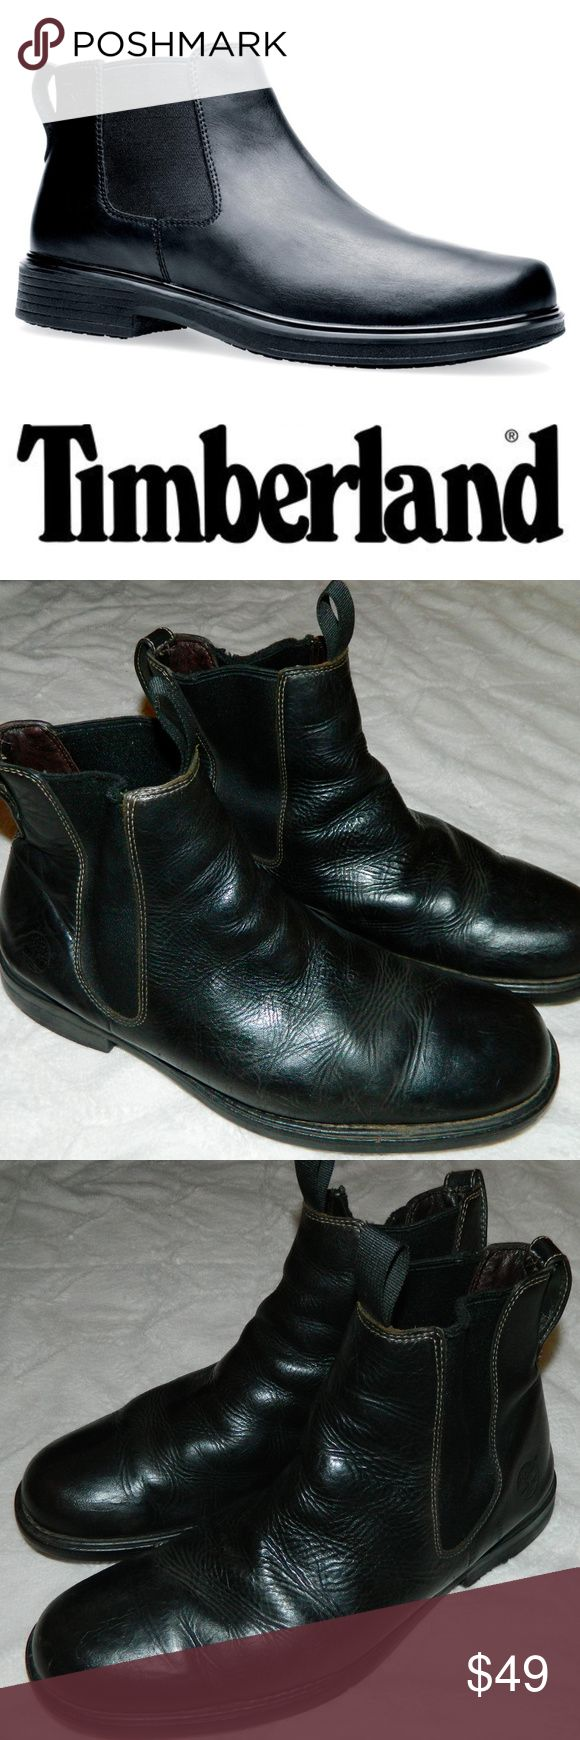 TIMBERLAND Chukka BOOTS Black LEATHER Sz. 12 With some wearing down of heels timberland Shoes Chukka Boots